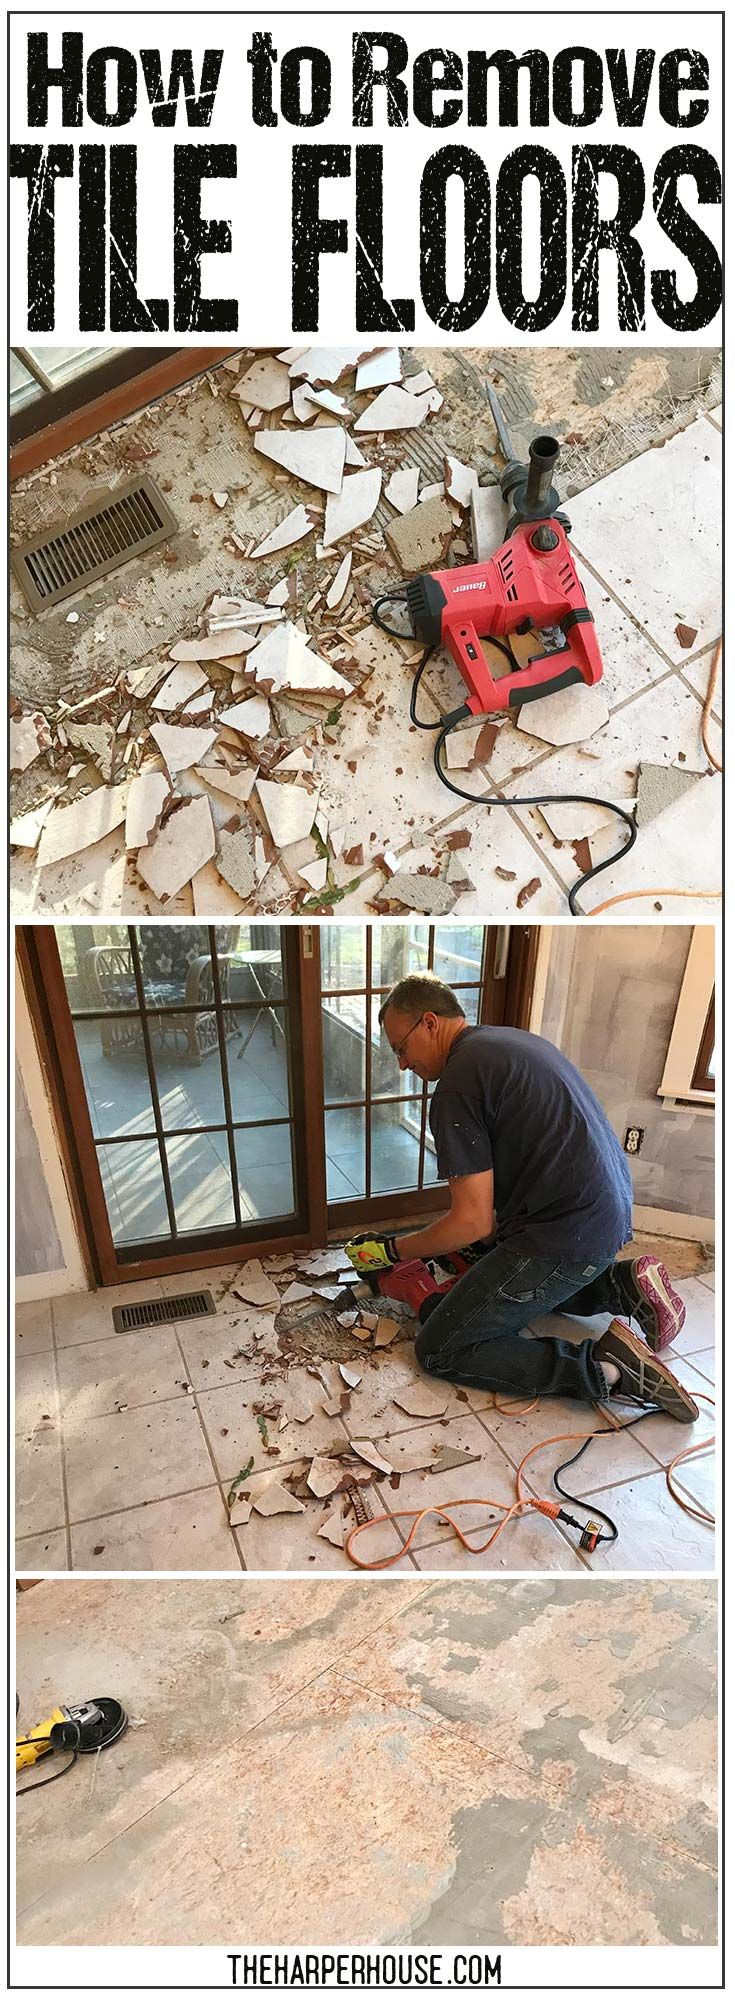 How to remove tile floors ceramic tile floors tile flooring and how to remove tile floors ceramic tile floors tile flooring and house dailygadgetfo Gallery